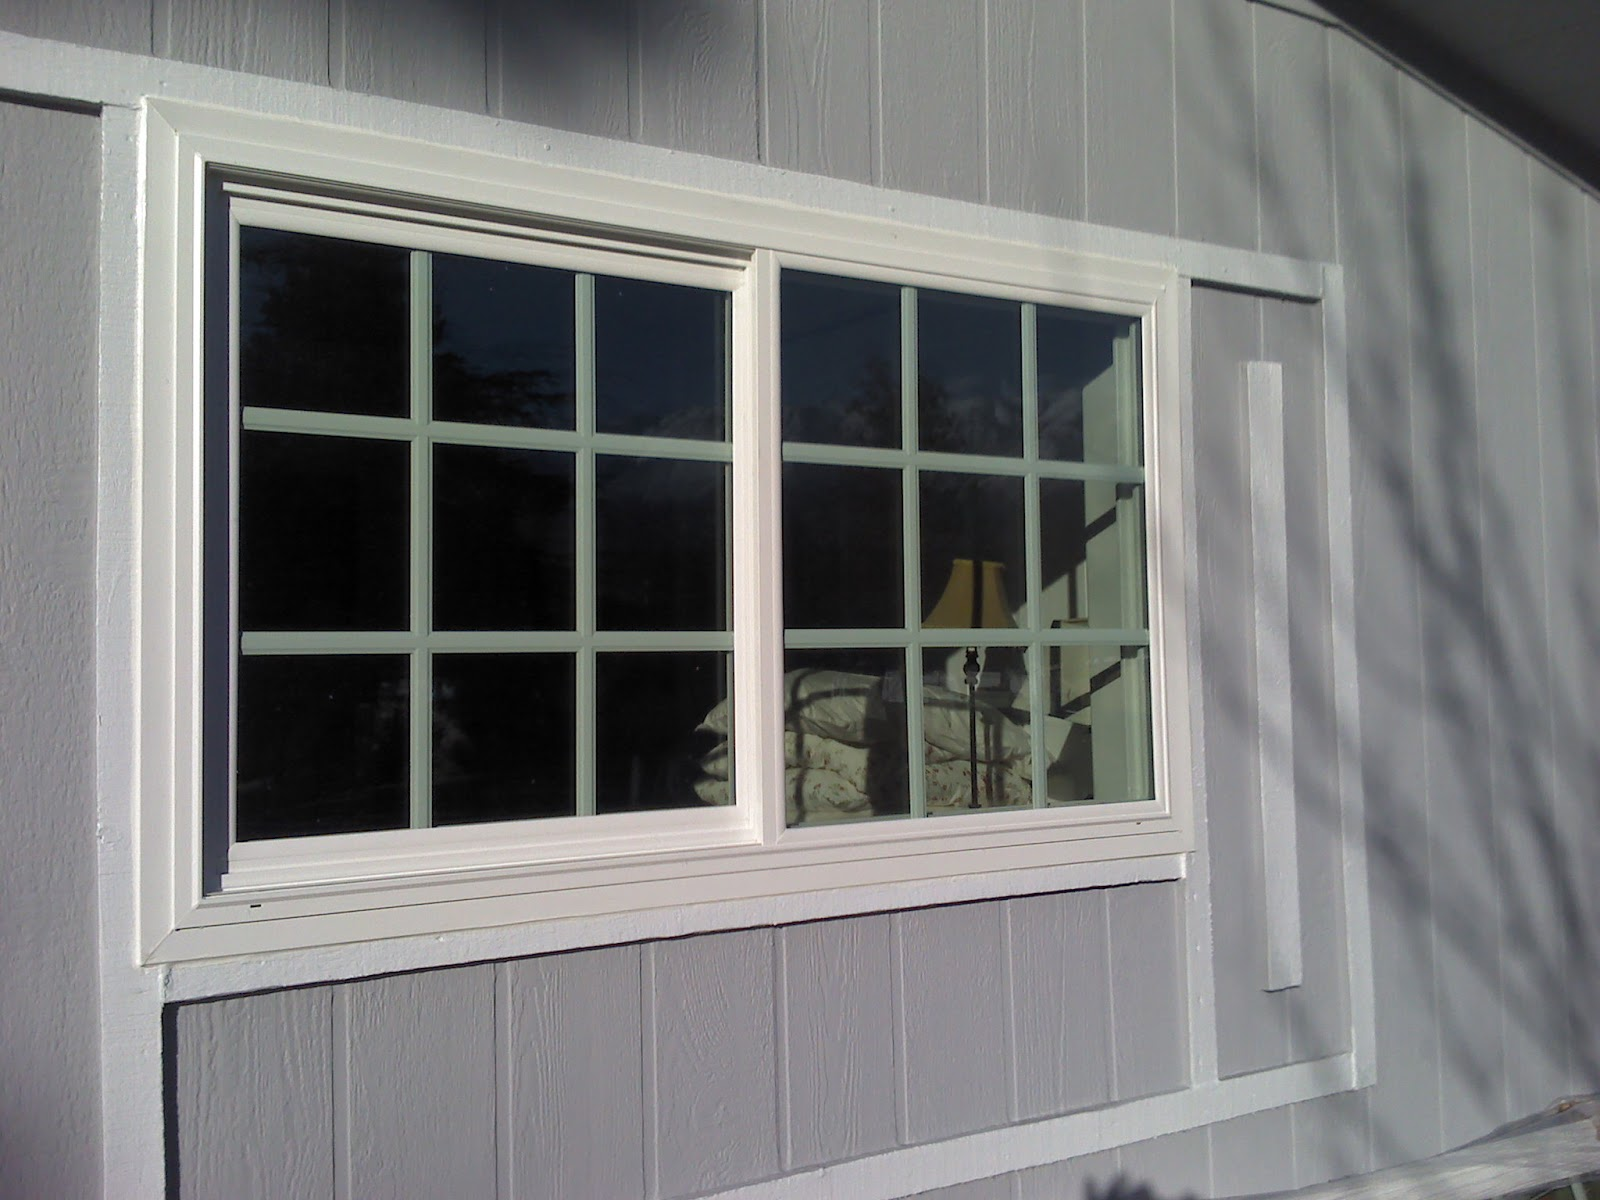 Lapham construction energy efficient windows and doors in for Energy saving windows